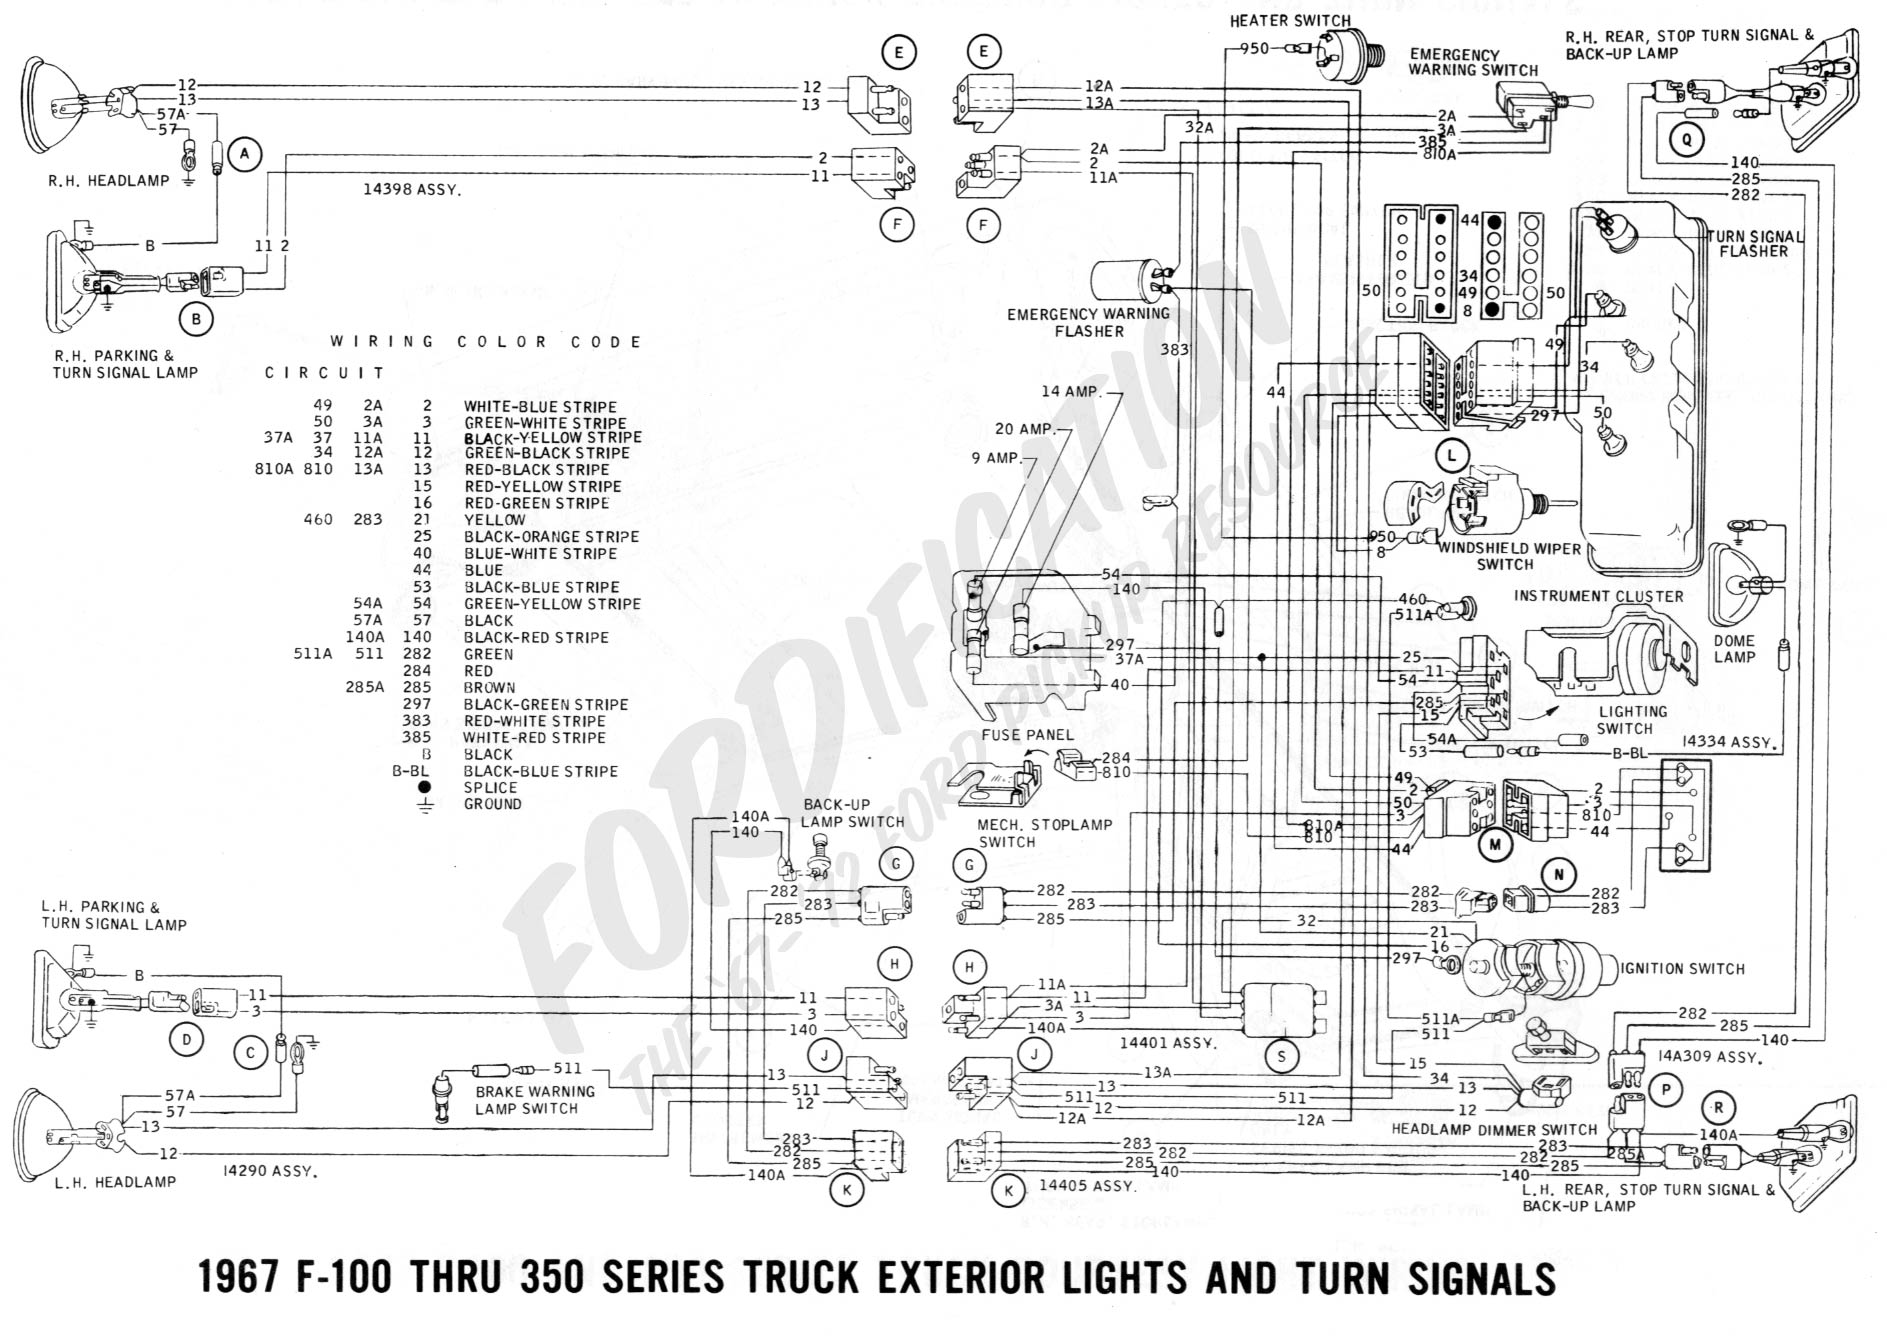 Ford Pickup Wiring Diagrams Wiring Diagram Schematics Ford Wiring Ford Diagrams  Schematics